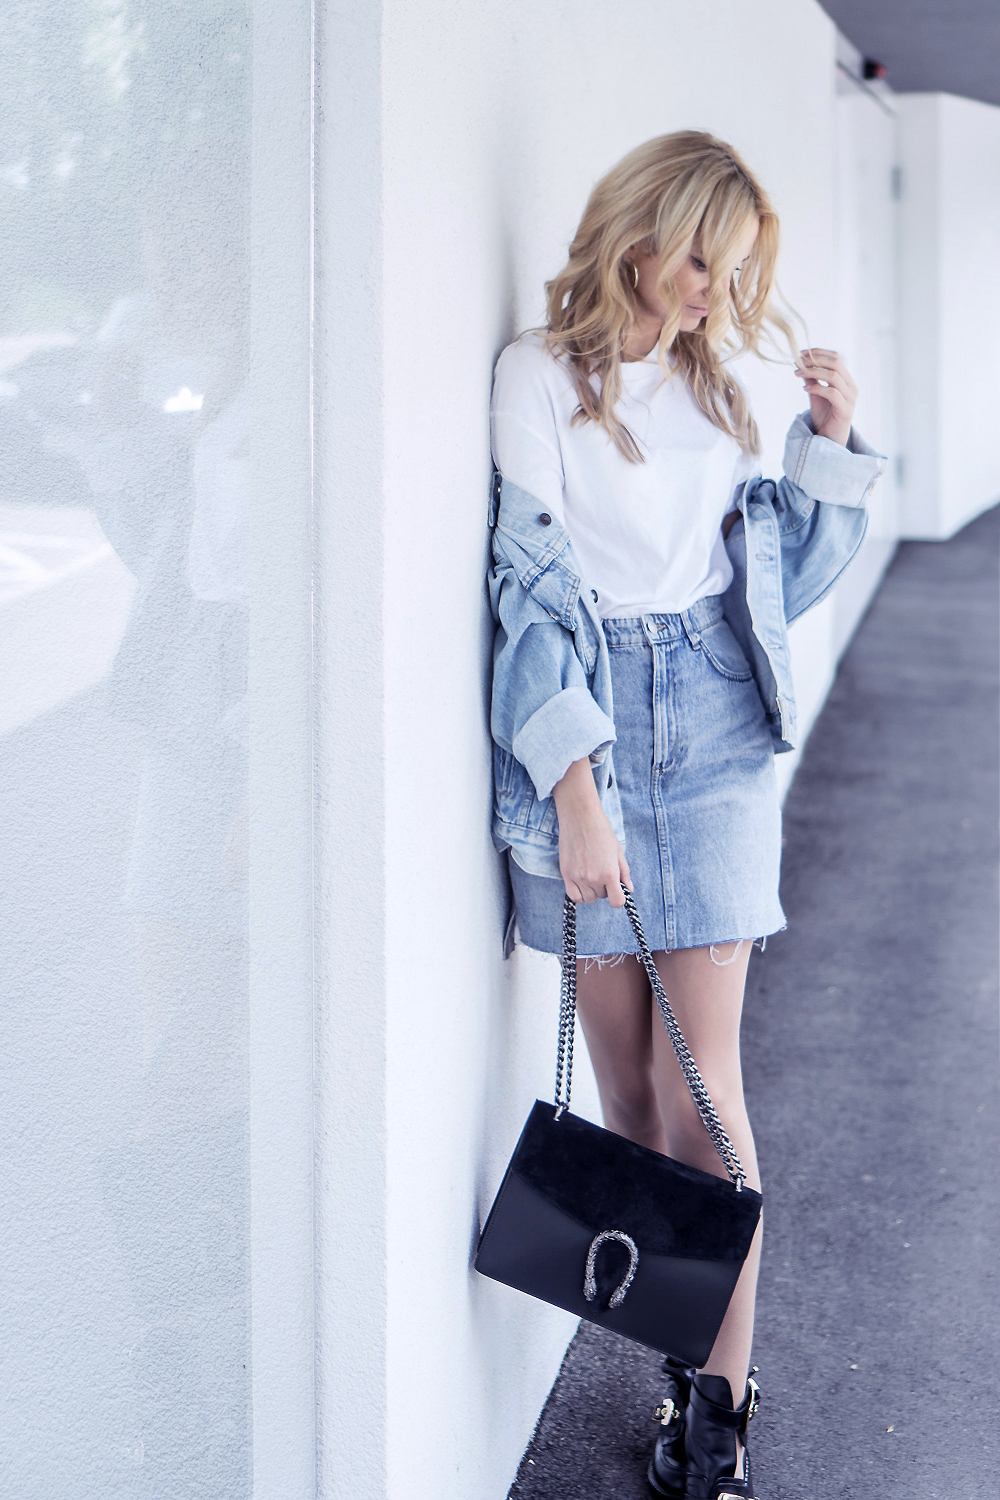 OOTD Casual u0026 basic. Denim street style outfit. - Lilu0026#39;icons